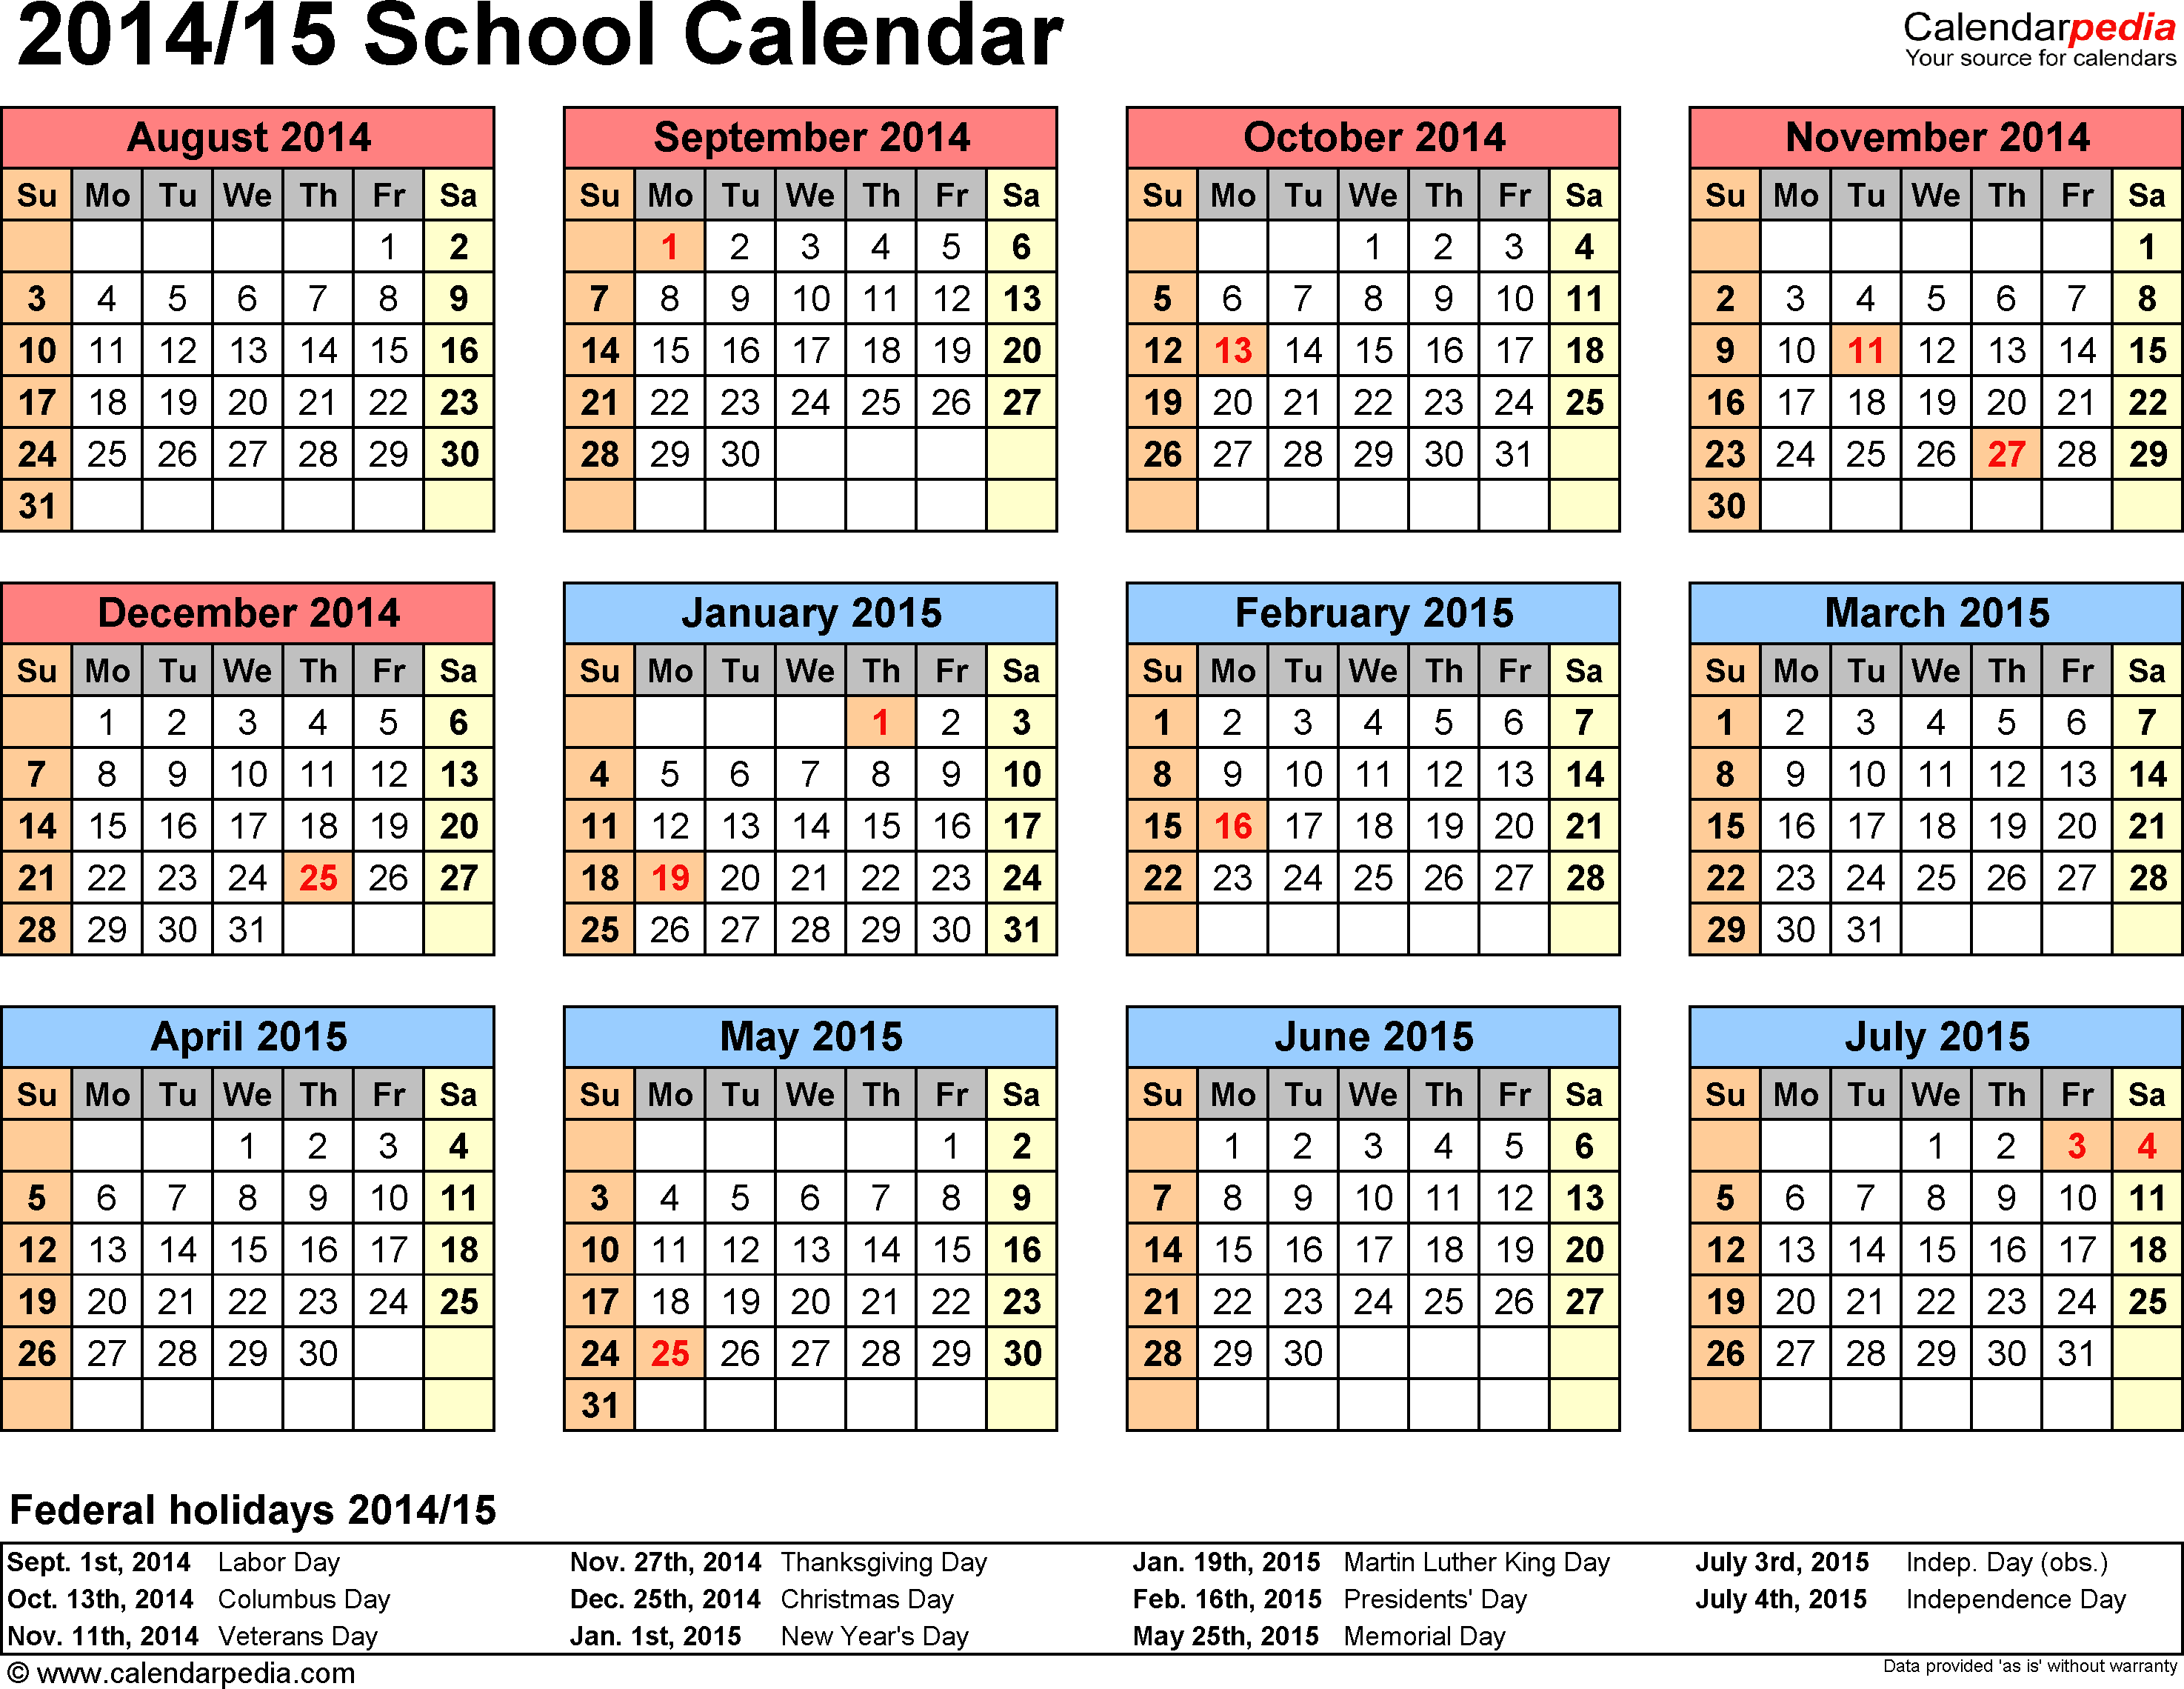 2015 Calendars Template 4 School Calendar 201415 For Word